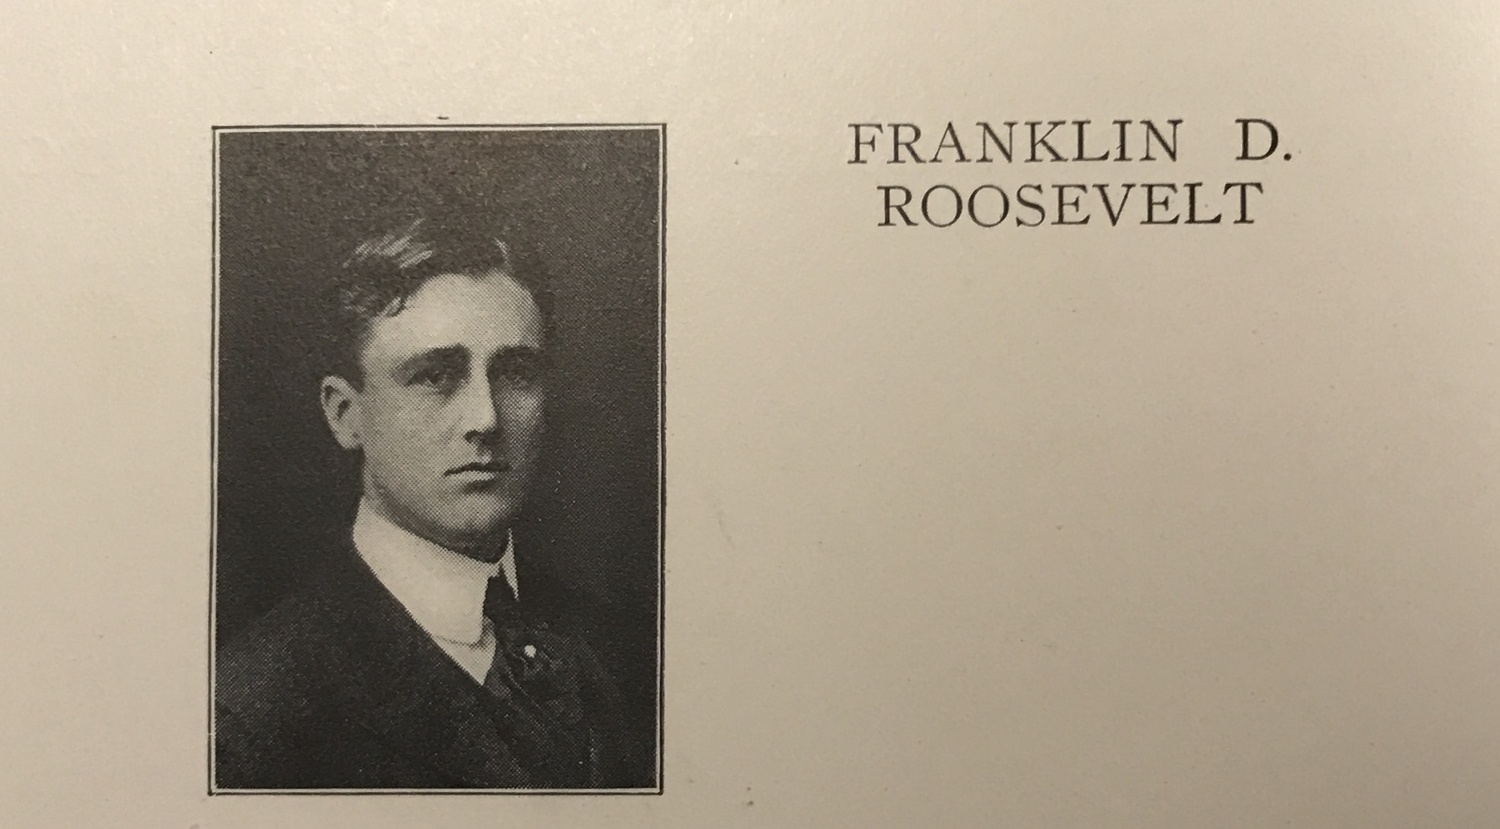 Franklin D. Roosevelt, Class of 1904, and a former Crimson president.